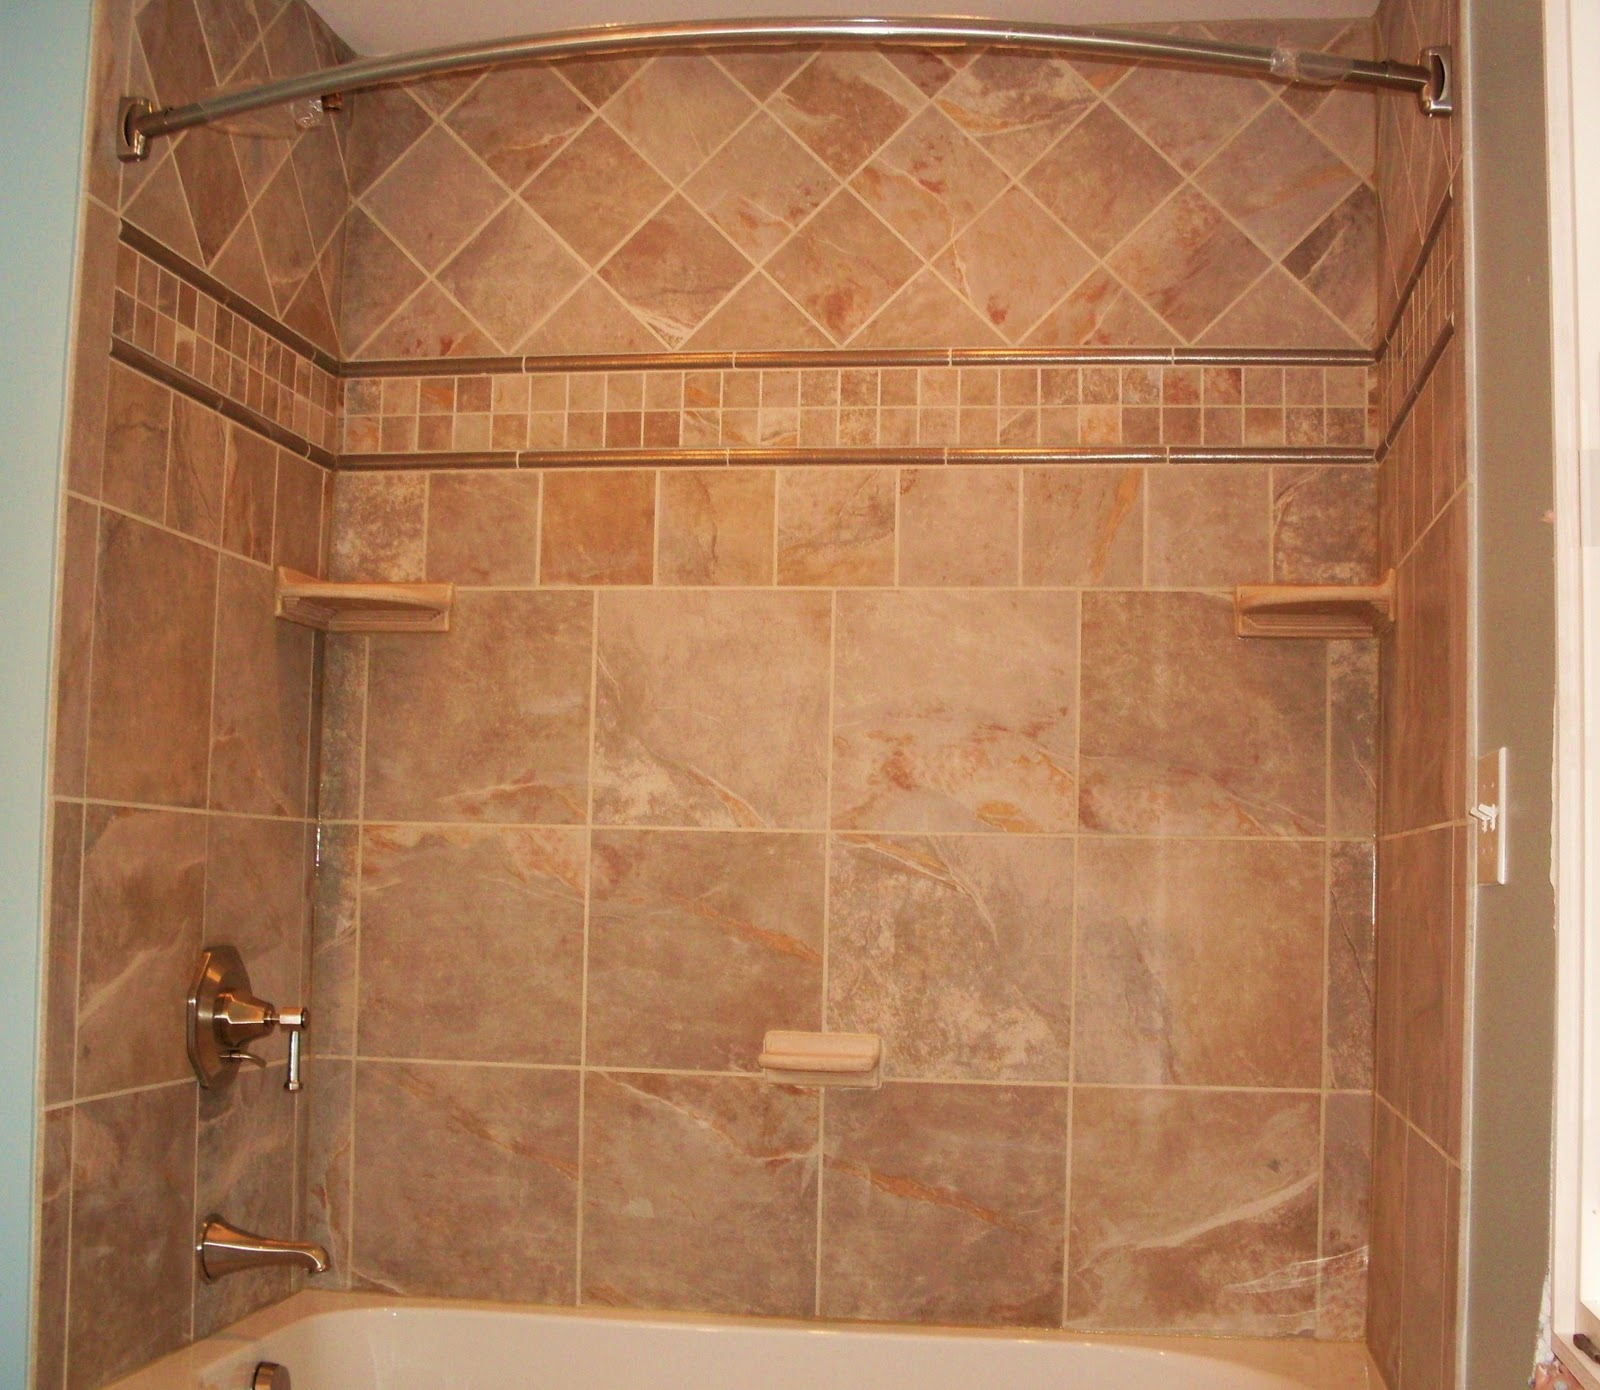 remodel ideas on Pinterest | Tile Tub Surround, Tub ...